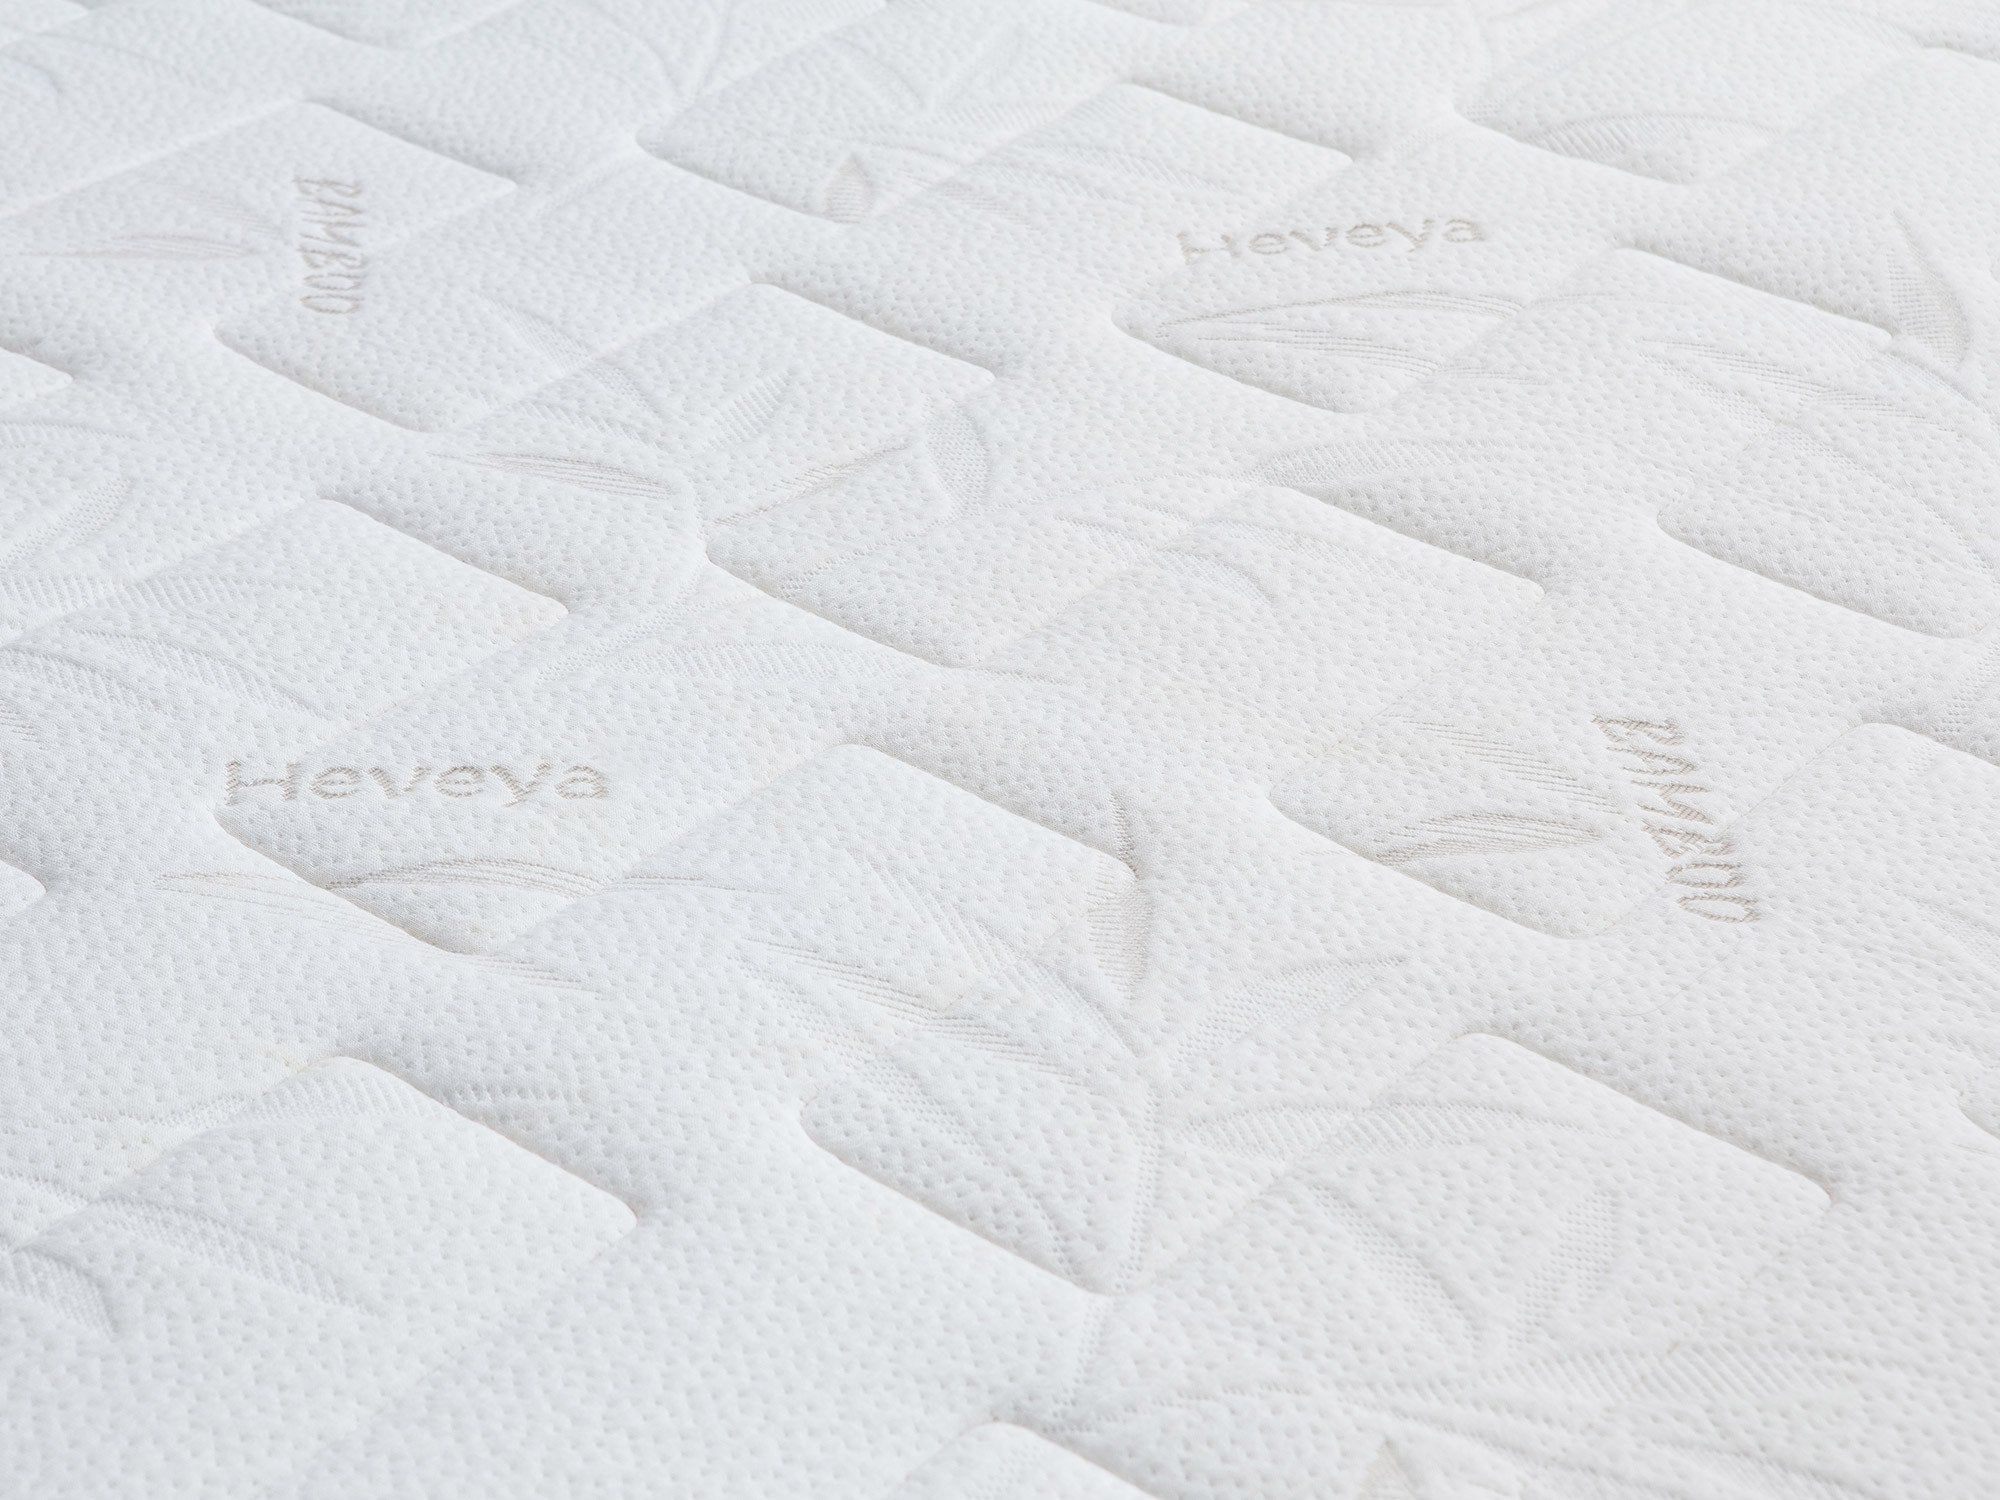 Heveya natural organic latex mattress III bamboo cover